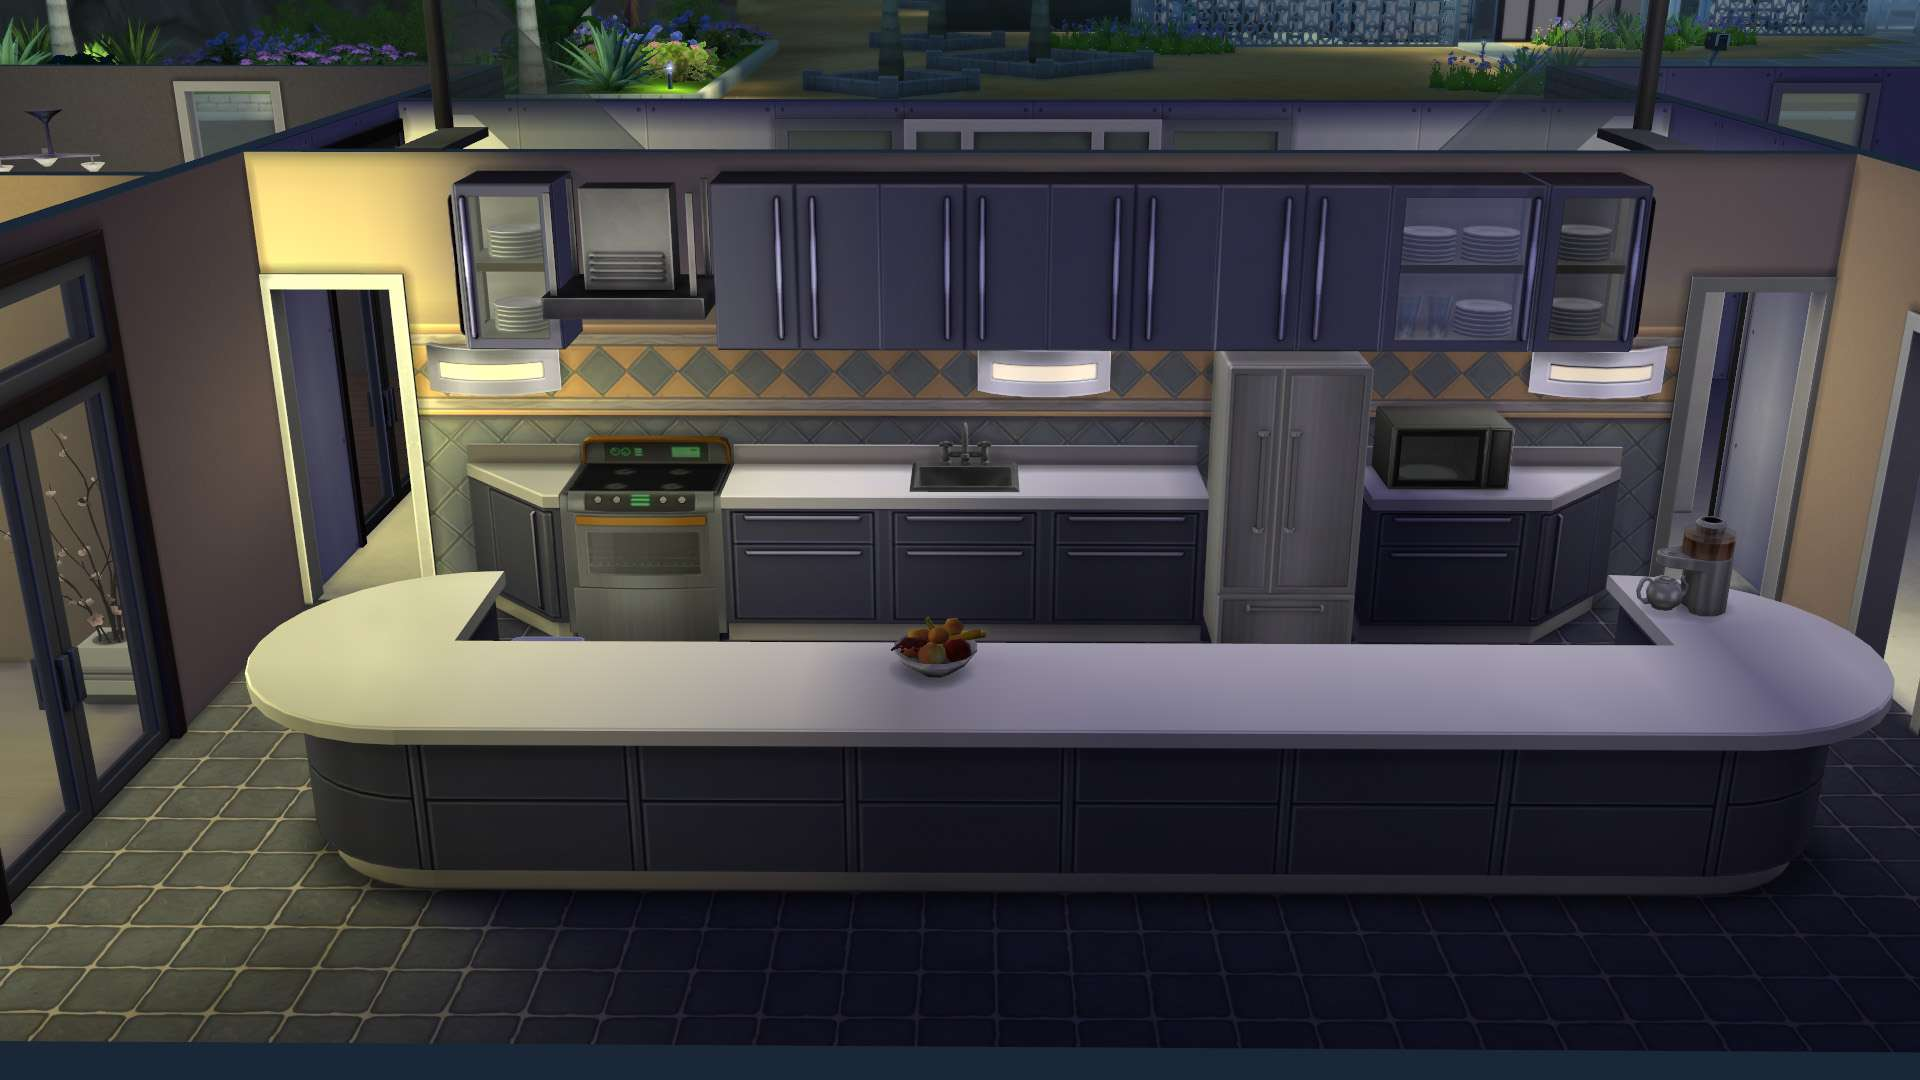 Miraculous The Sims 4 Building Counters Cabinets And Islands Pdpeps Interior Chair Design Pdpepsorg